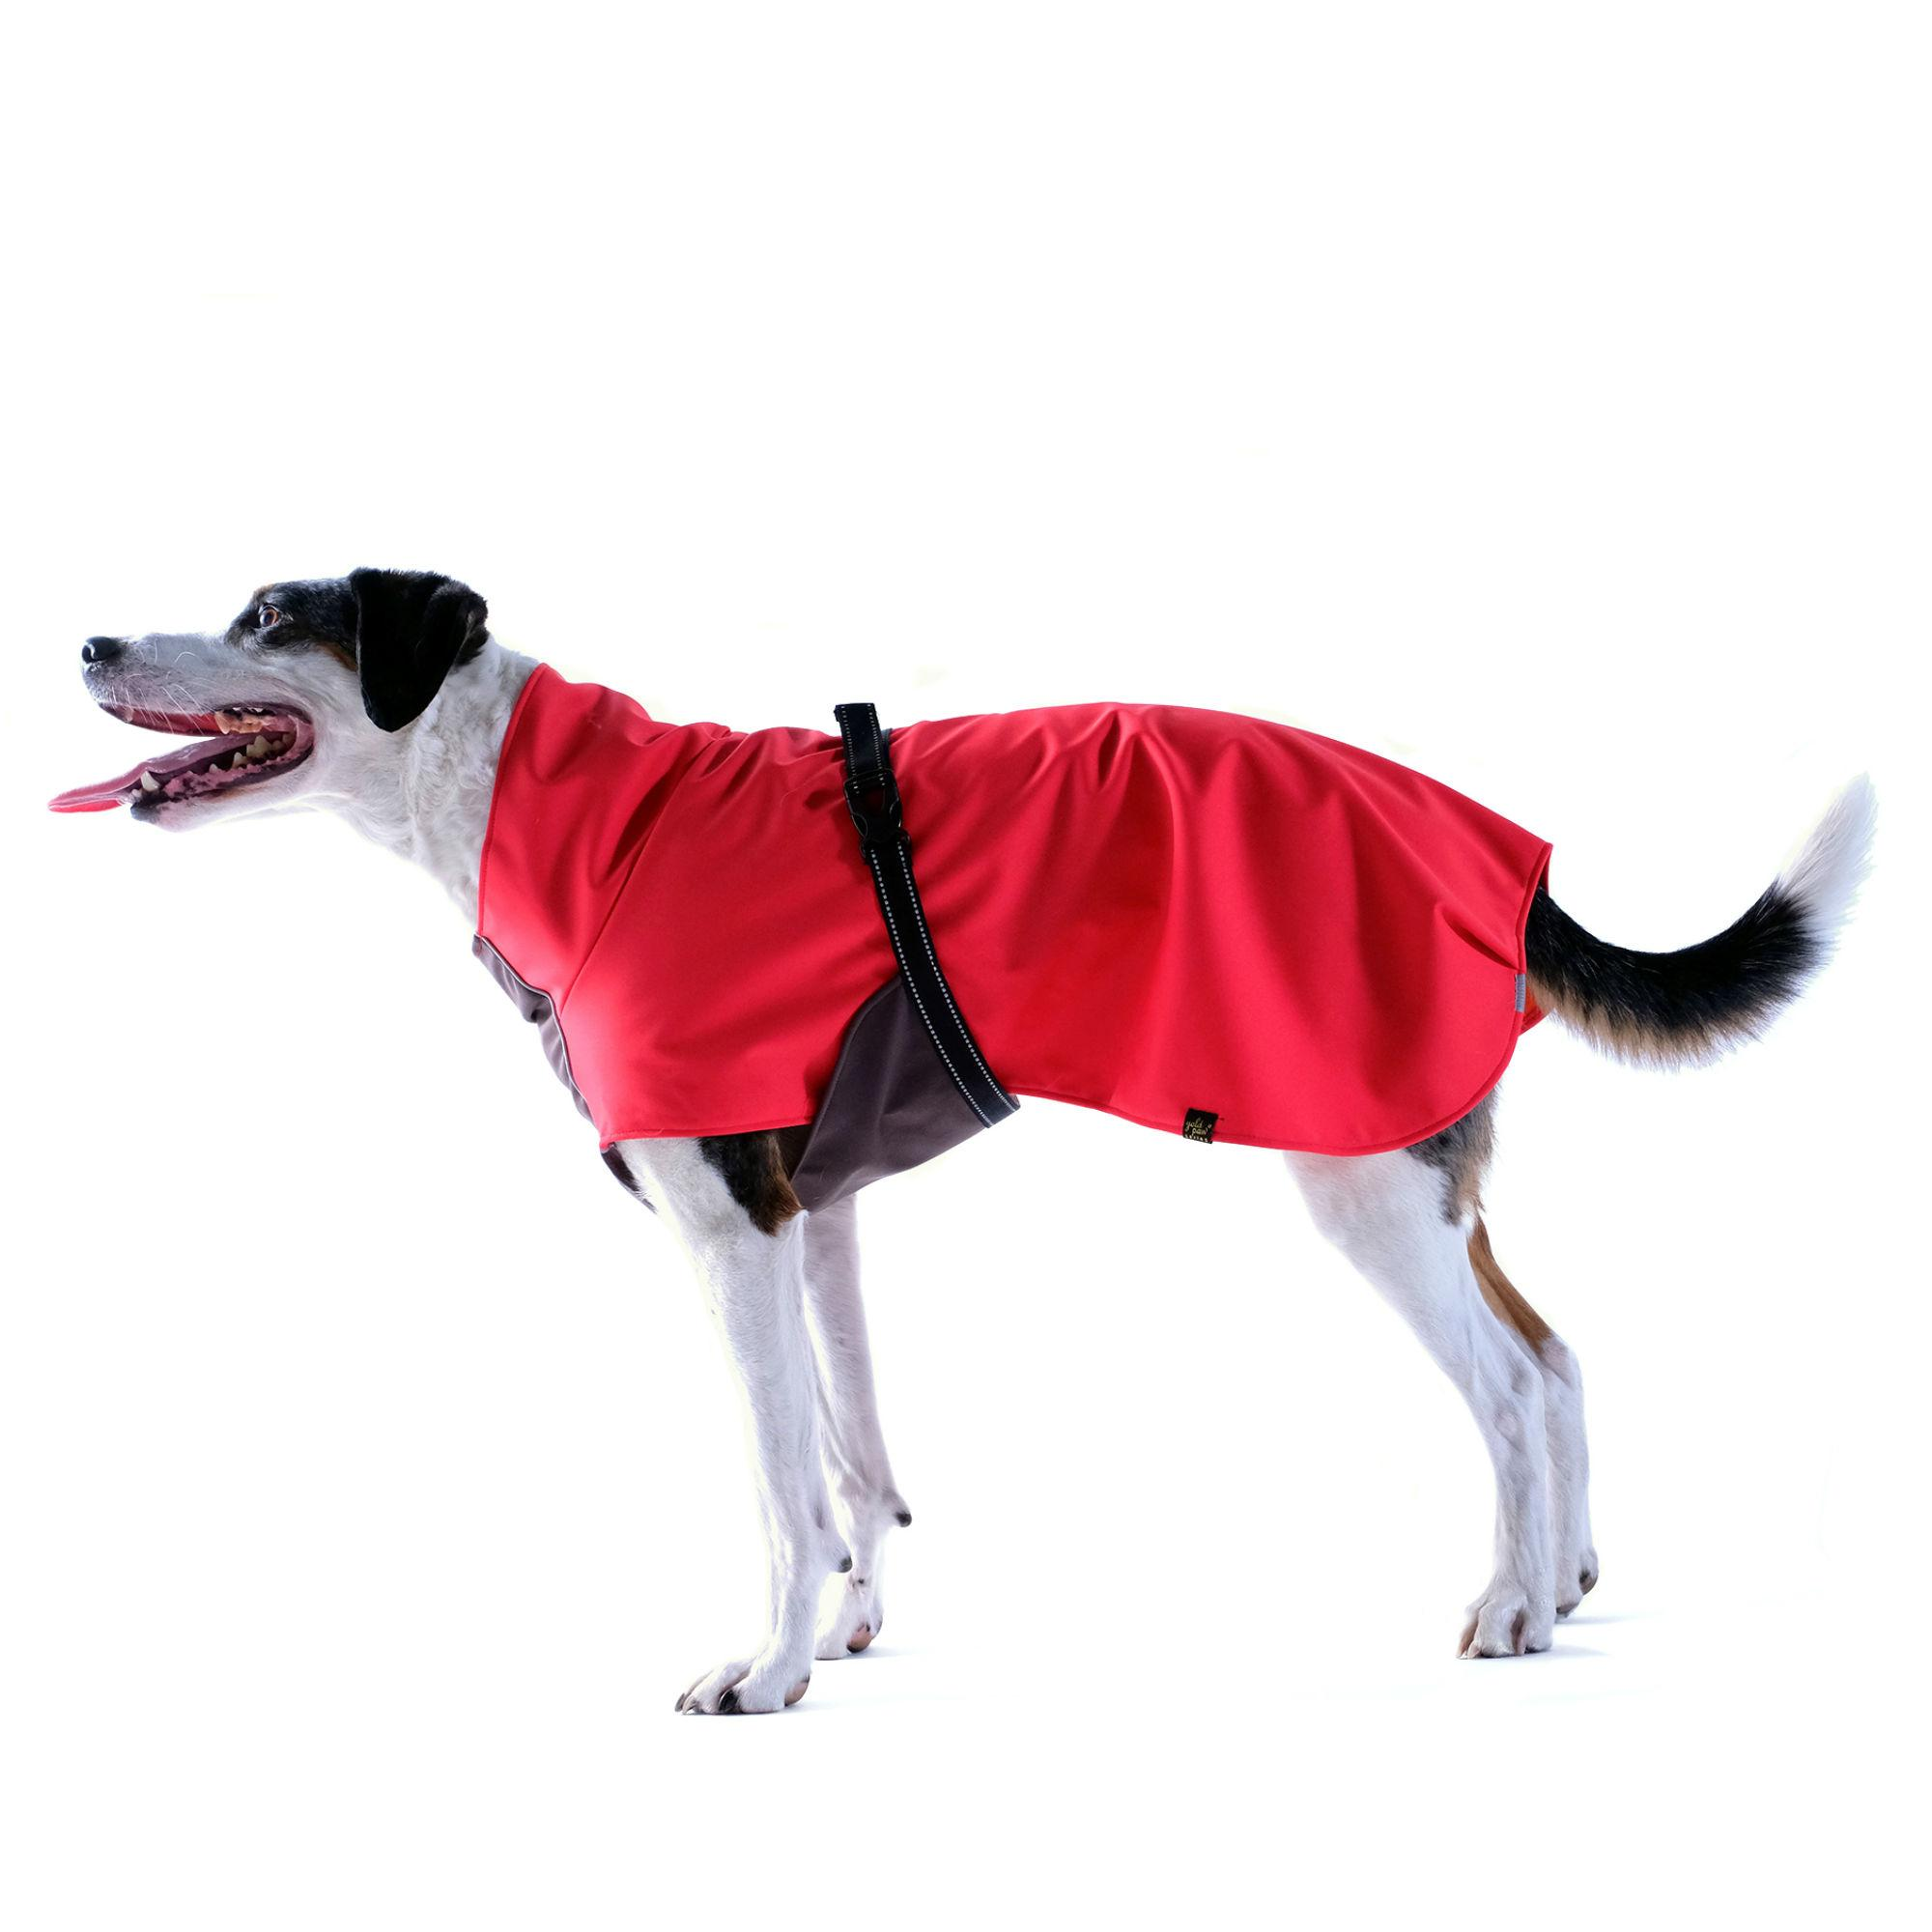 Rain Paw Dog Raincoat by Gold Paw - Red/Graphite